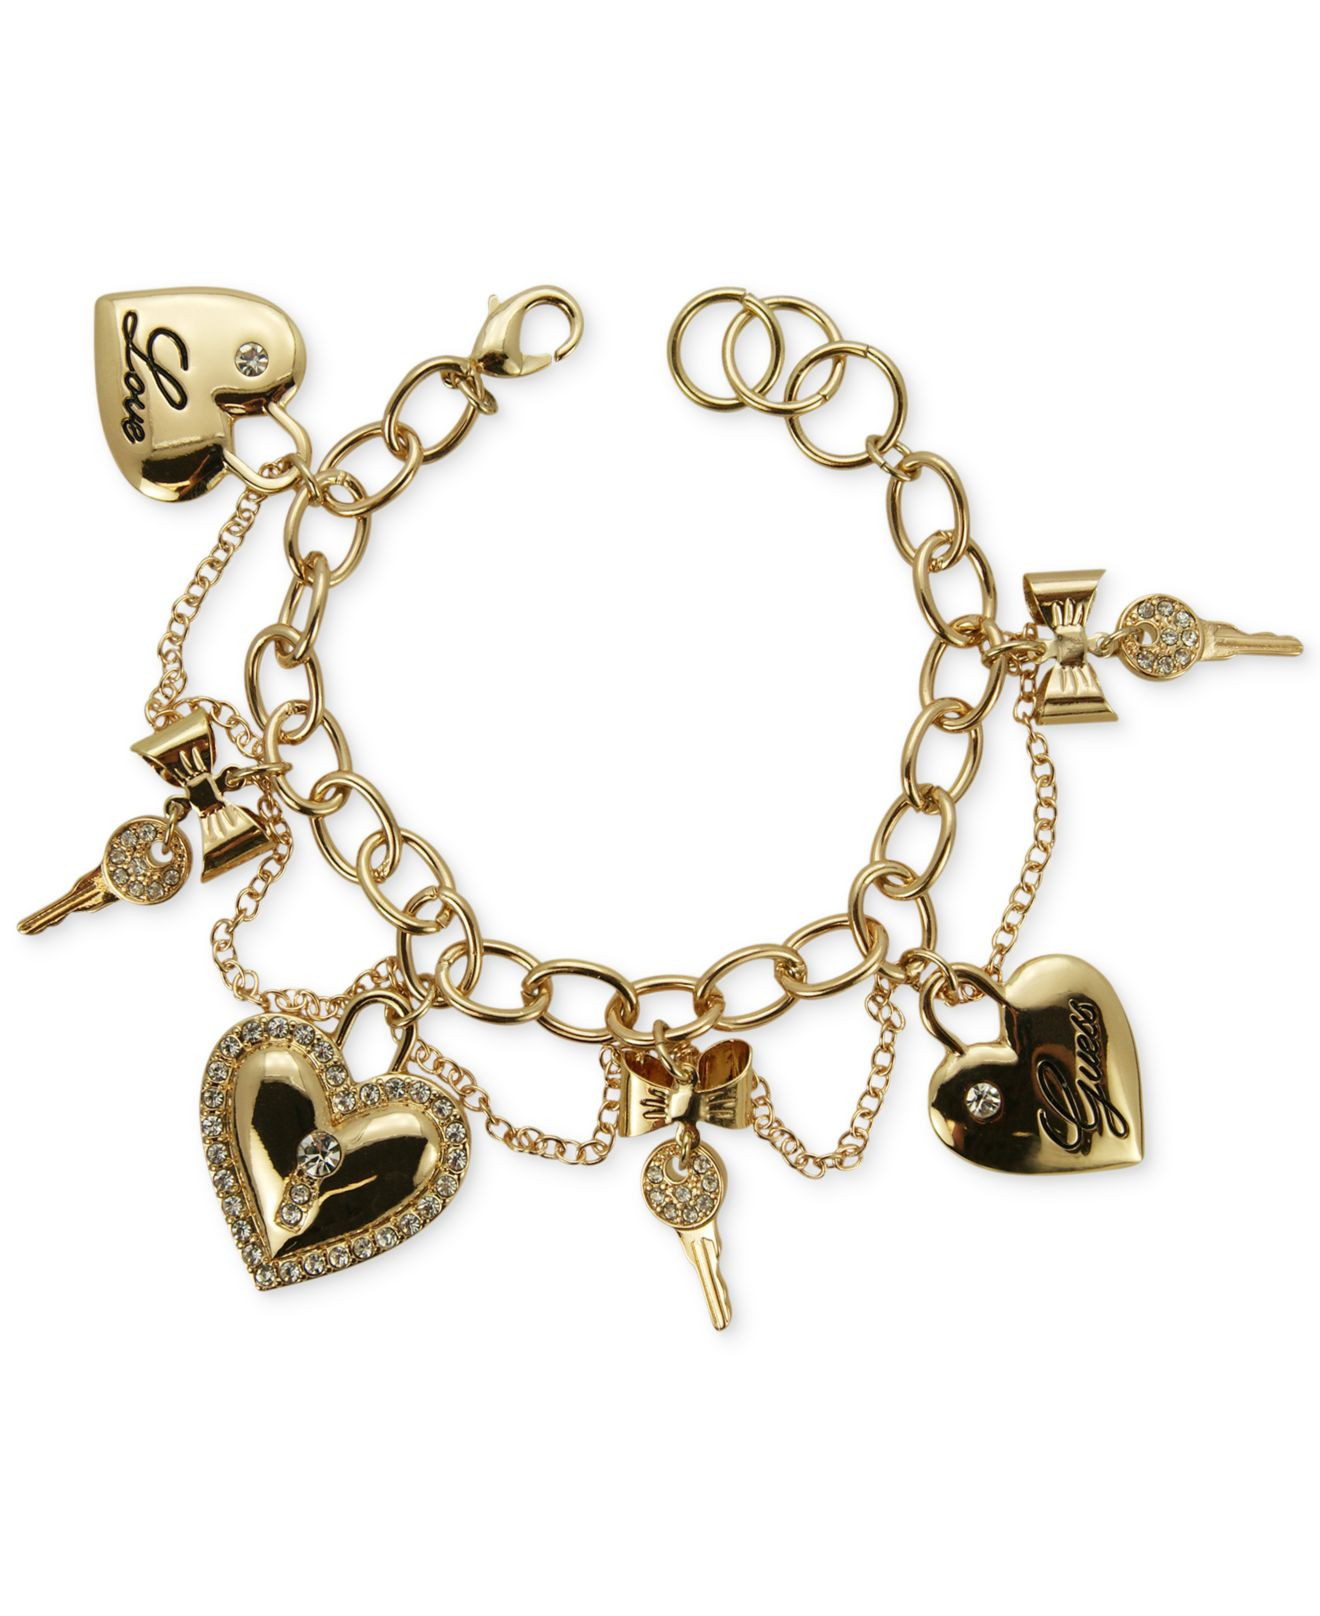 Guess Charm Bracelet  Lyst Guess Gold Tone Heart And Key Charm Bracelet in